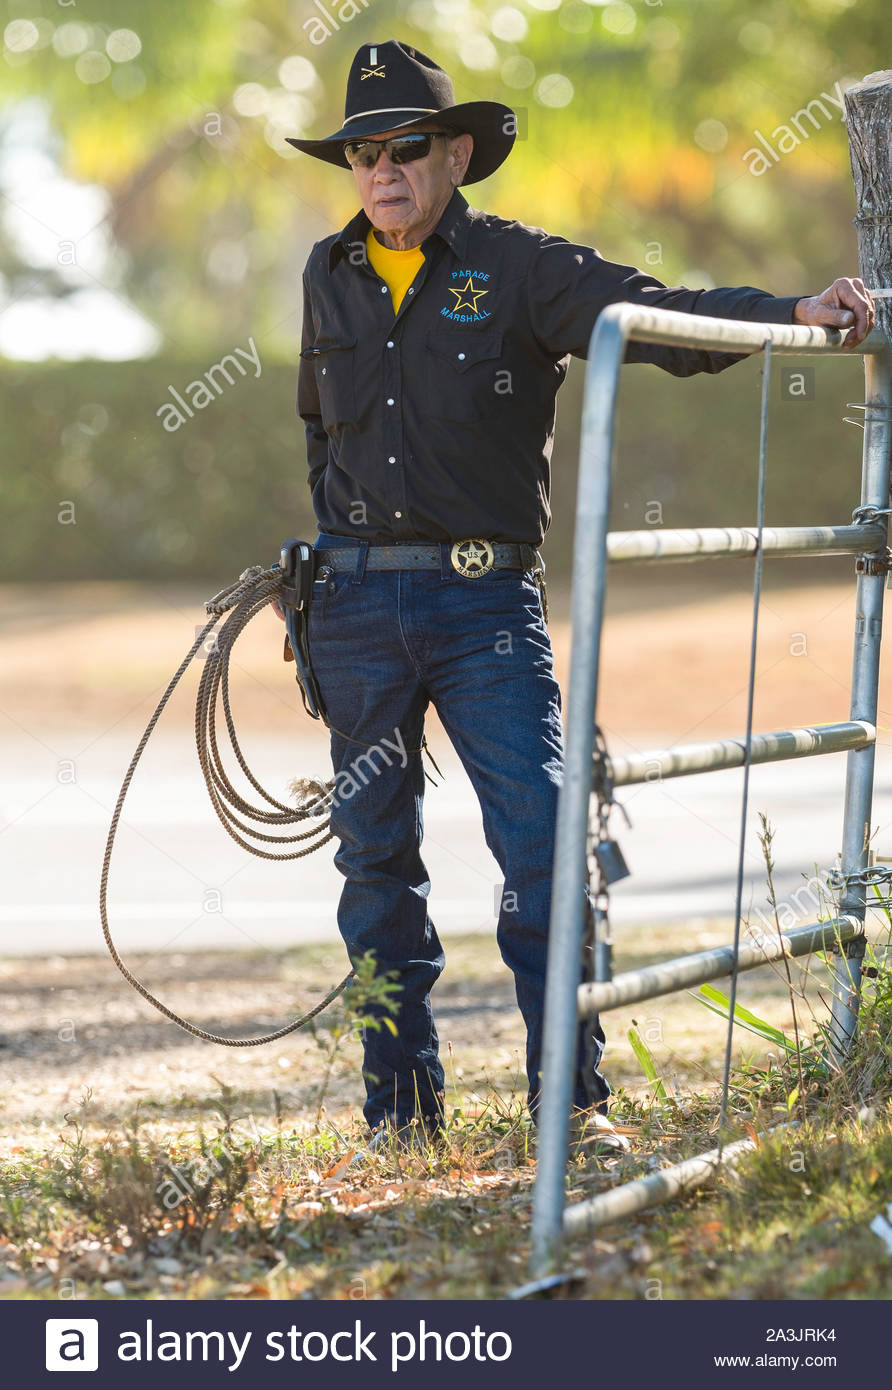 Mature man dressed in a black long sleeve shirt, black cowboy hat and jeans holding a coiled lasso at gate Stock Photo